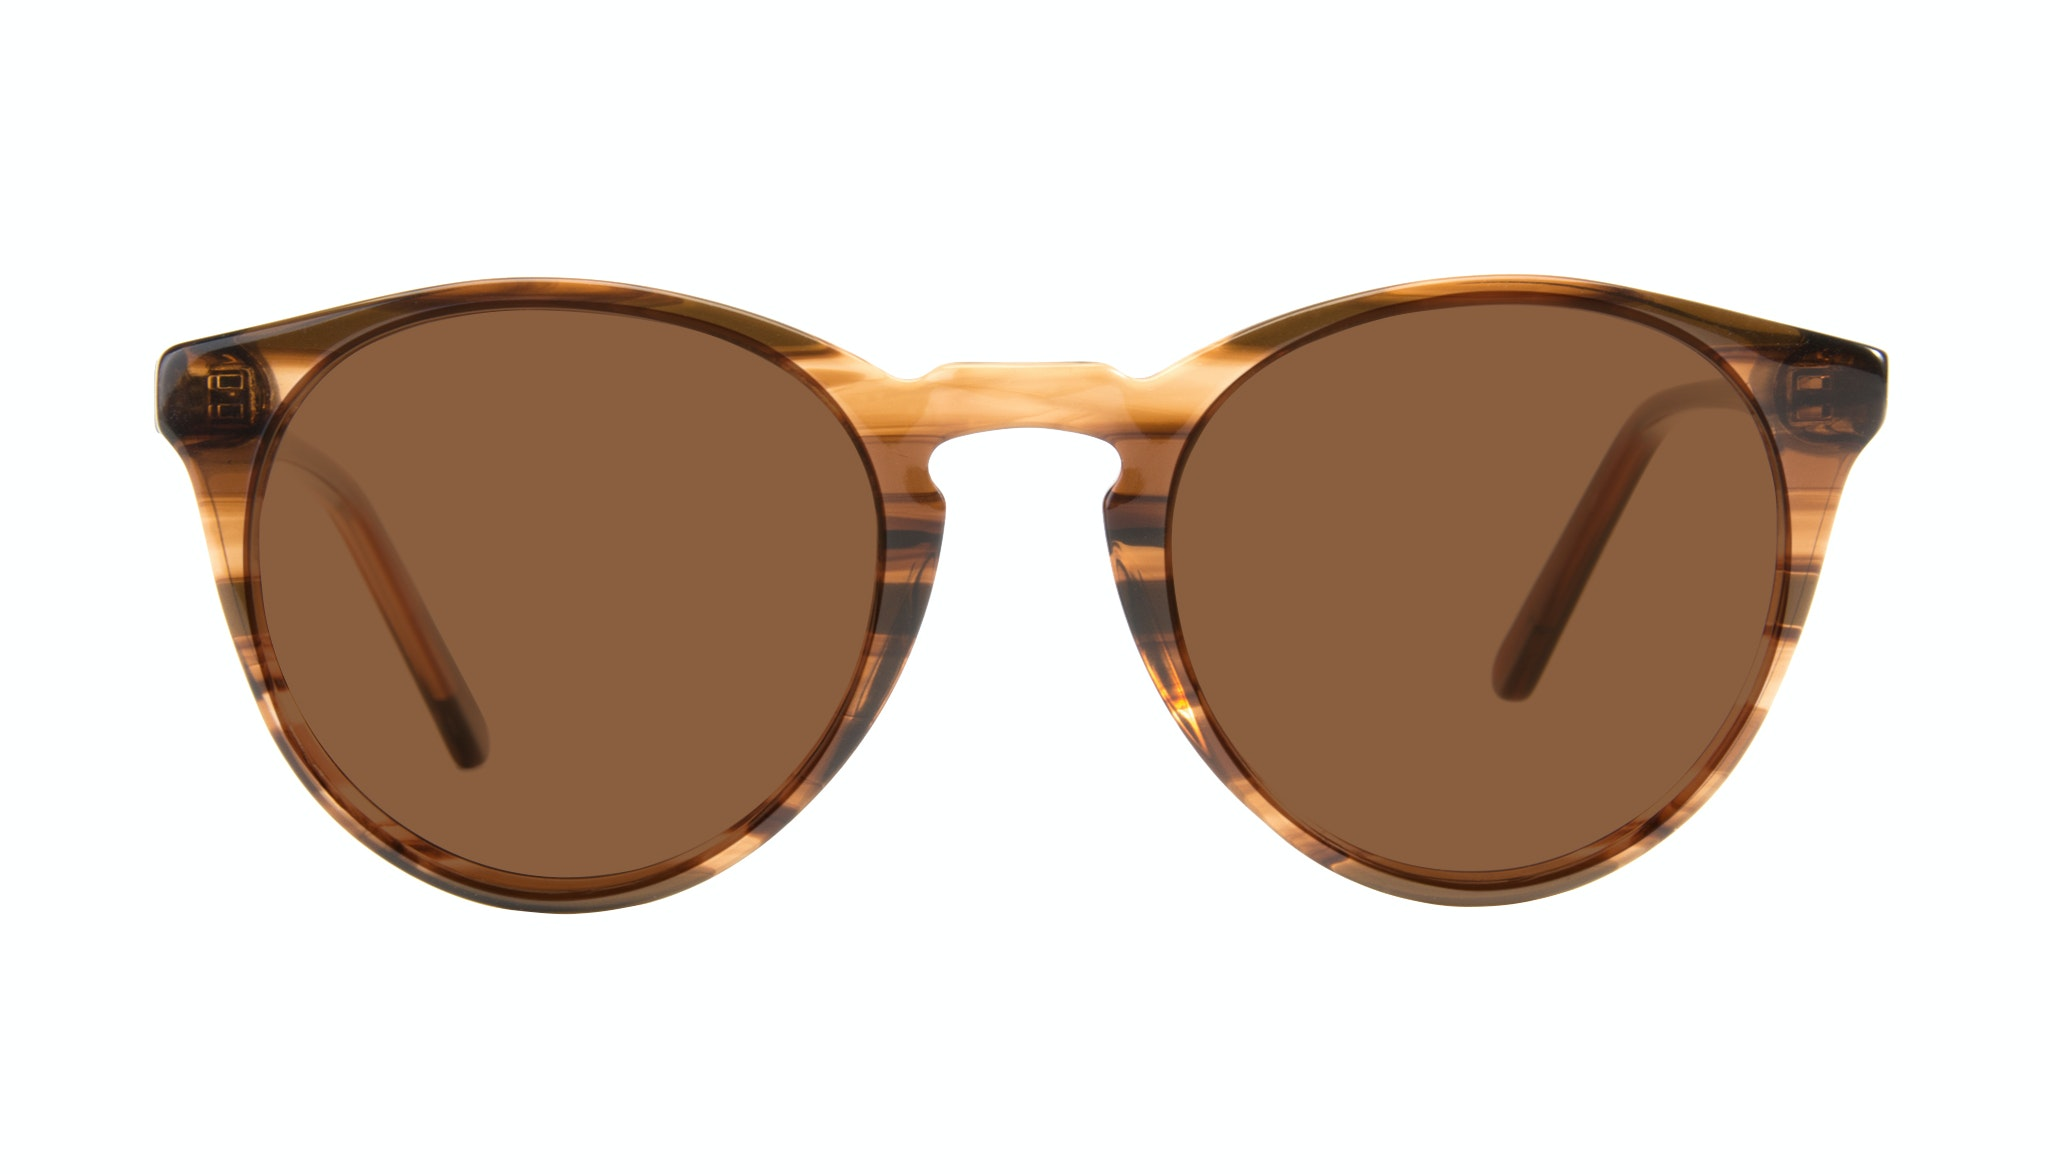 Affordable Fashion Glasses Round Sunglasses Men Arch Wood Front